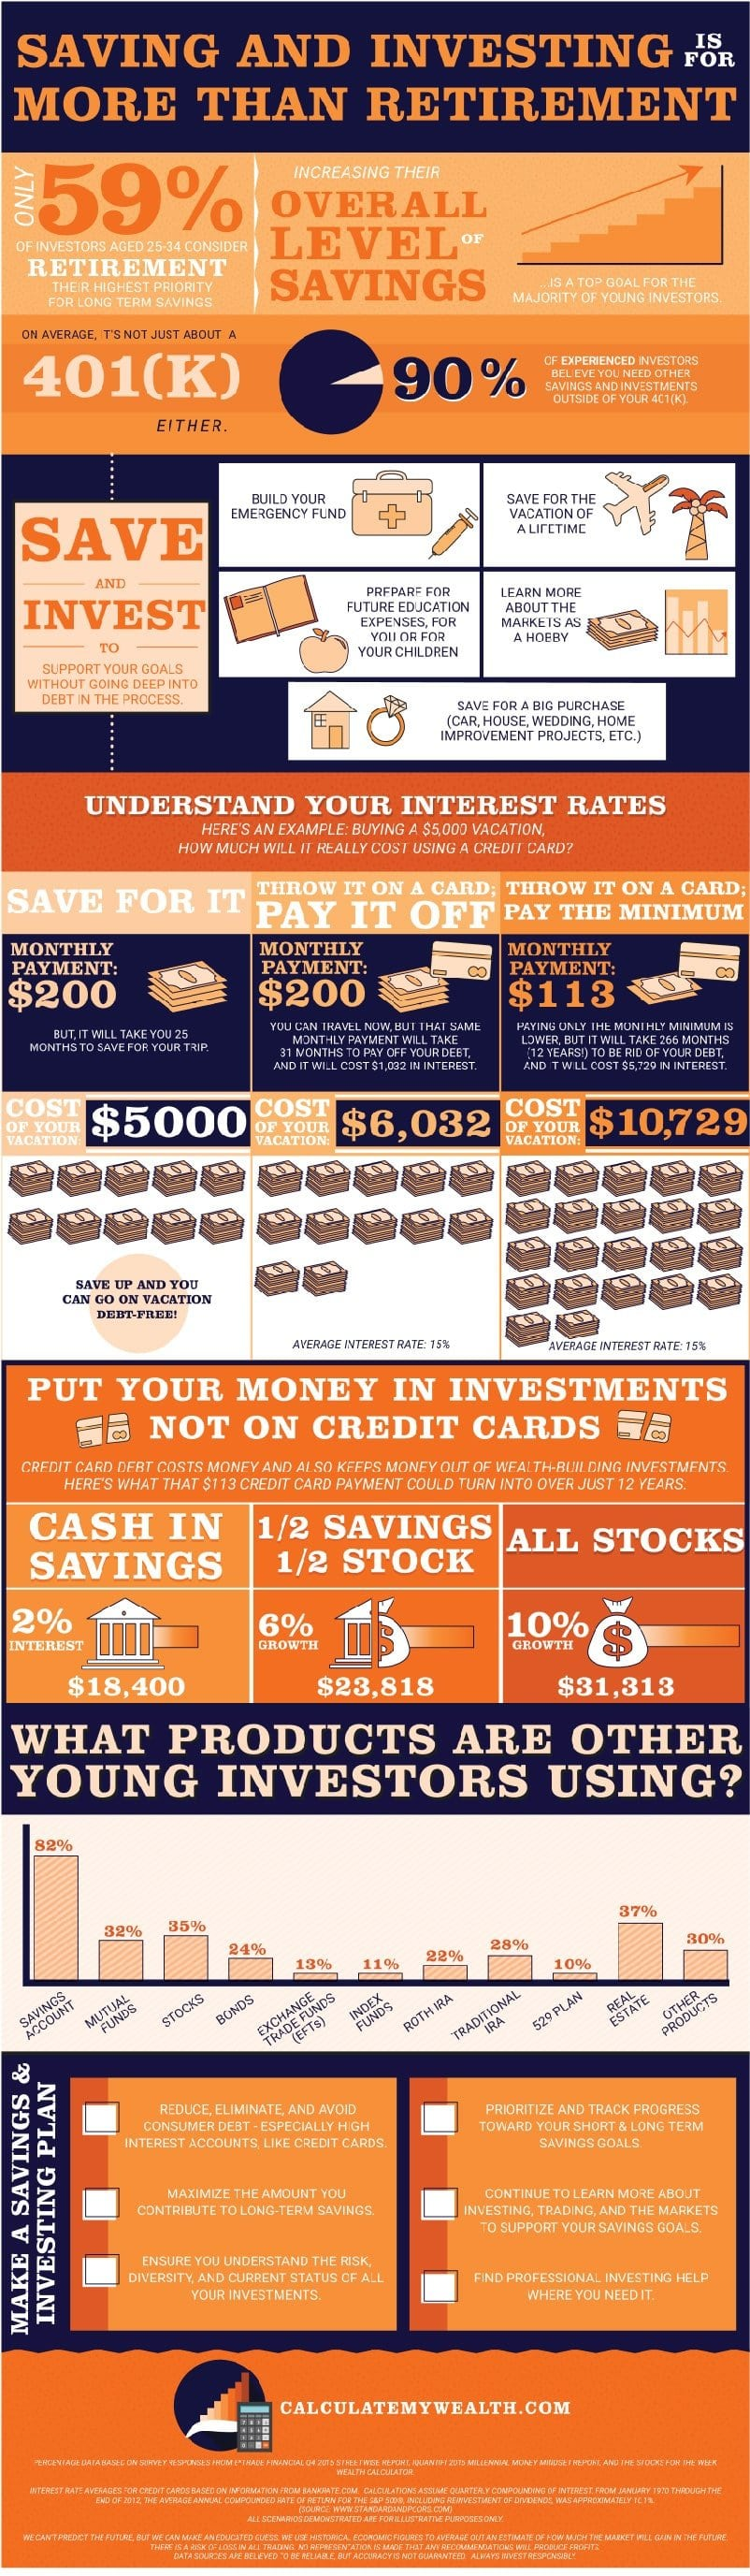 Calculate my Wealth Infographic | Lindsay Goldner - No Fonts Given Co